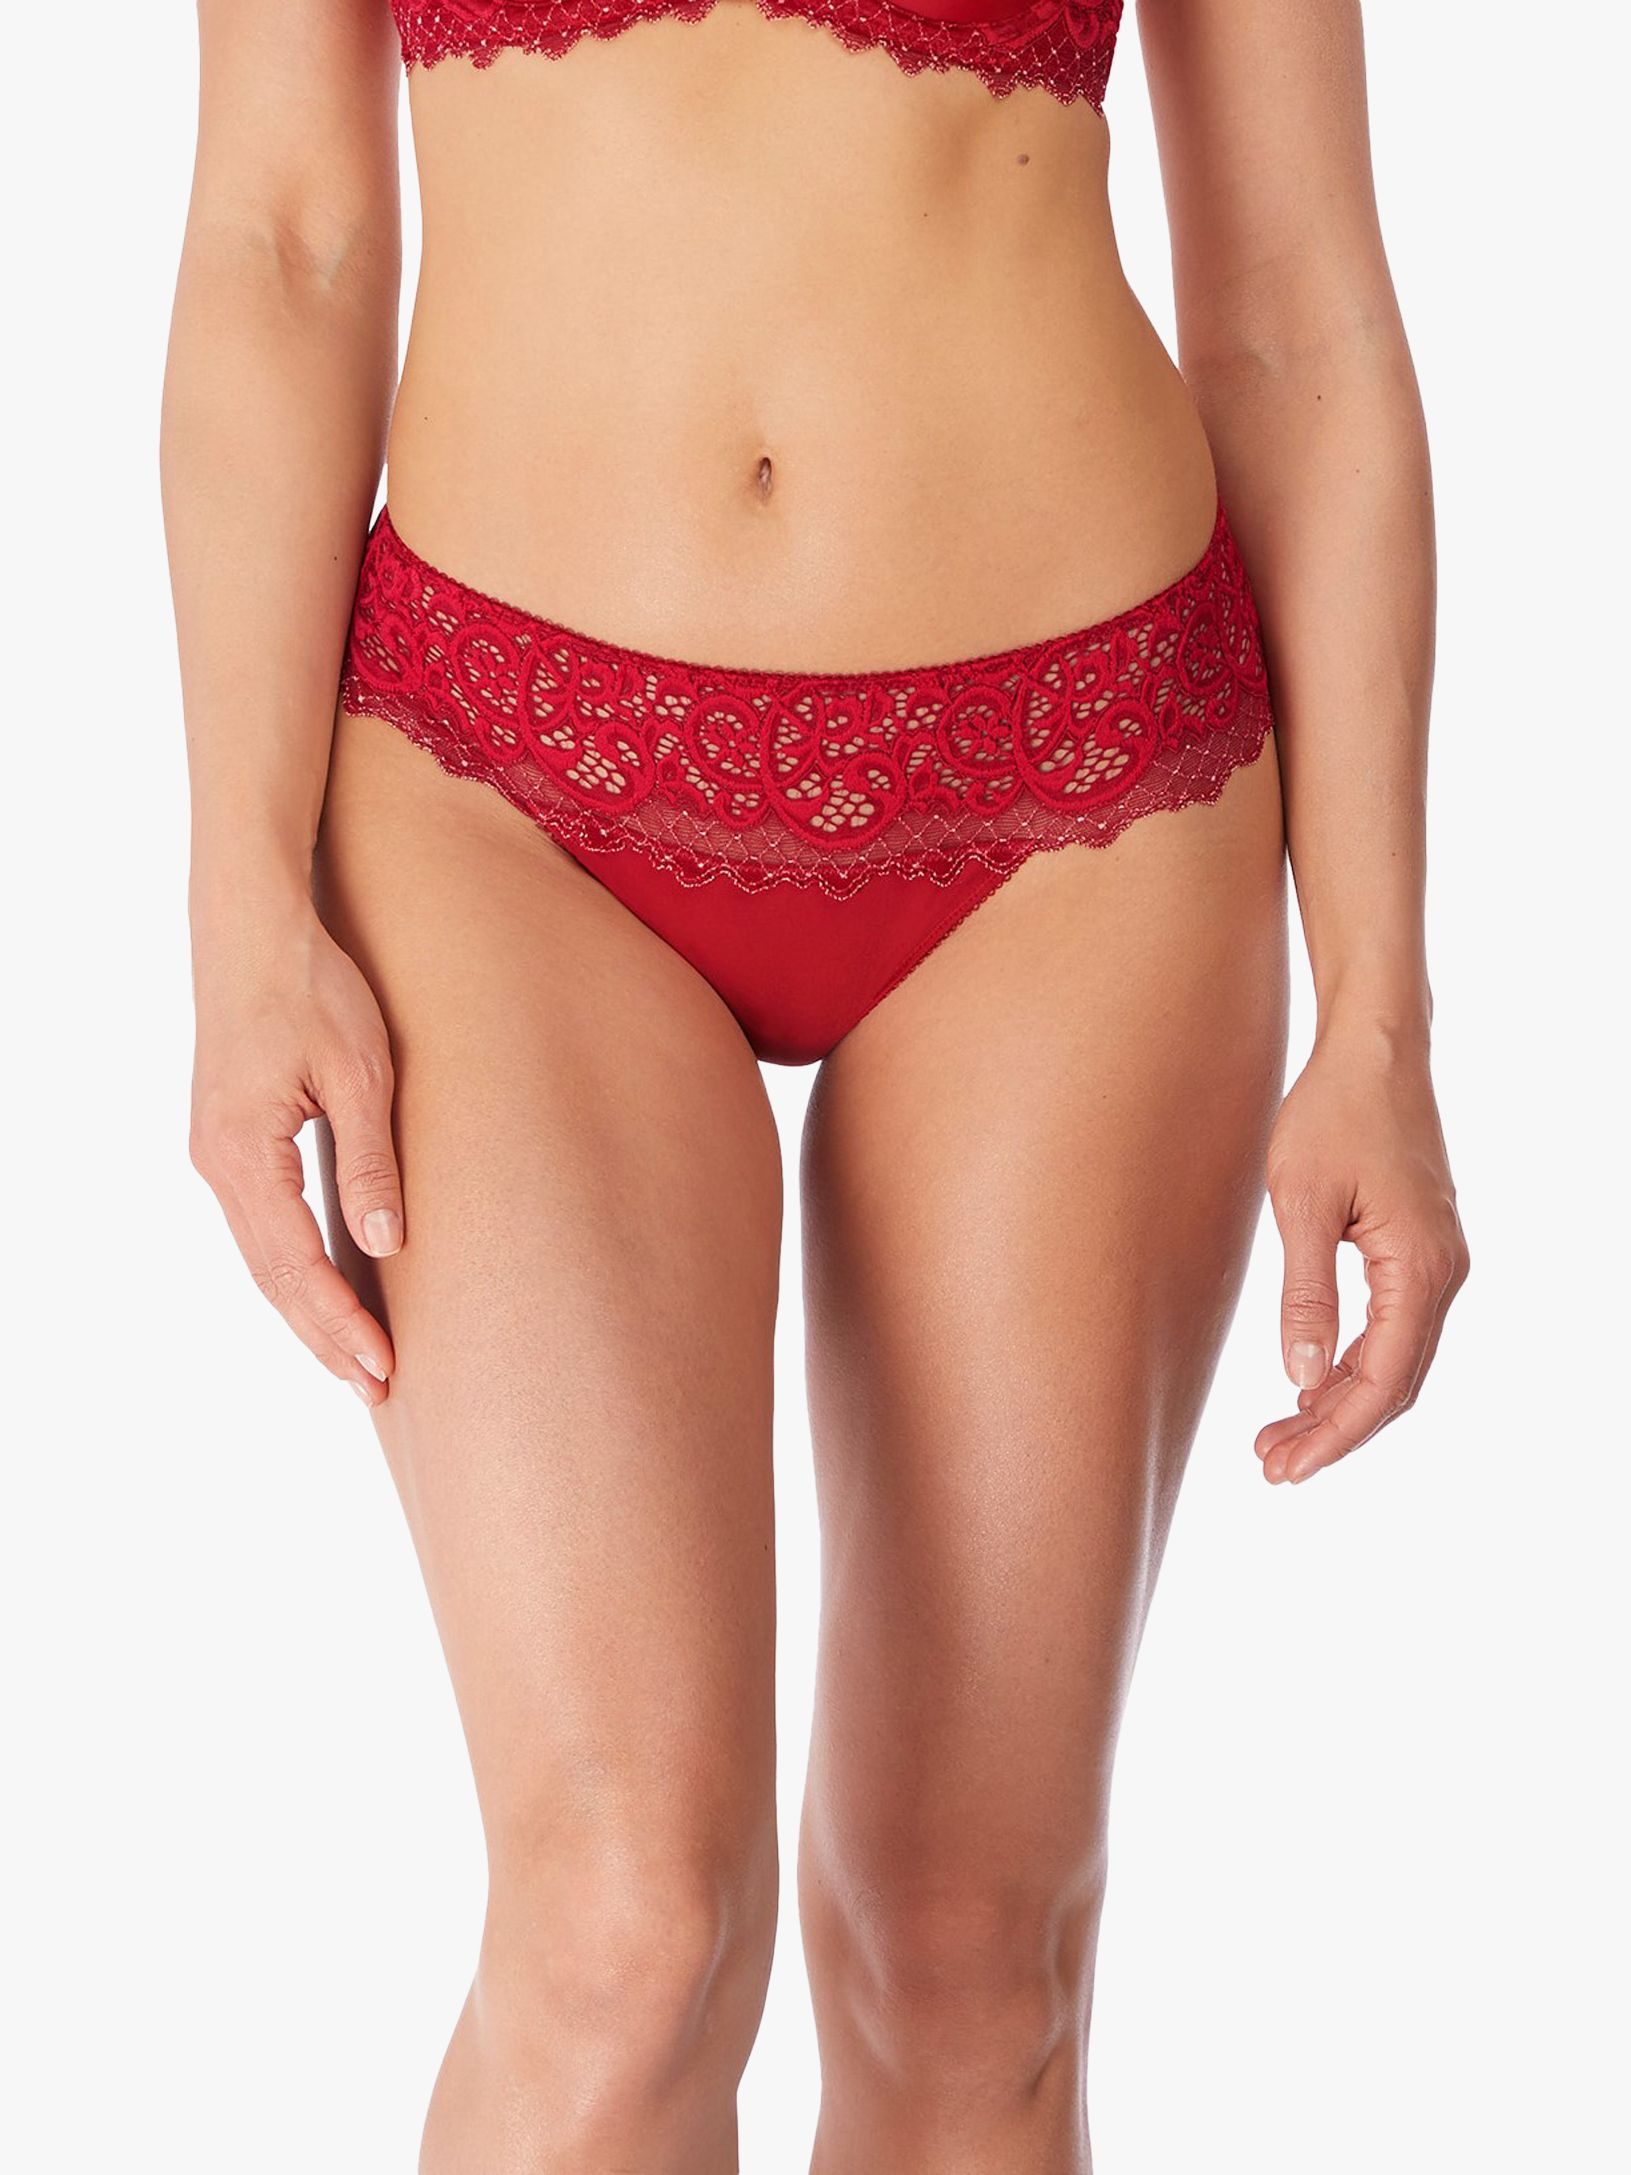 Wacoal Wacoal Lace Essential Tanga Briefs, Red